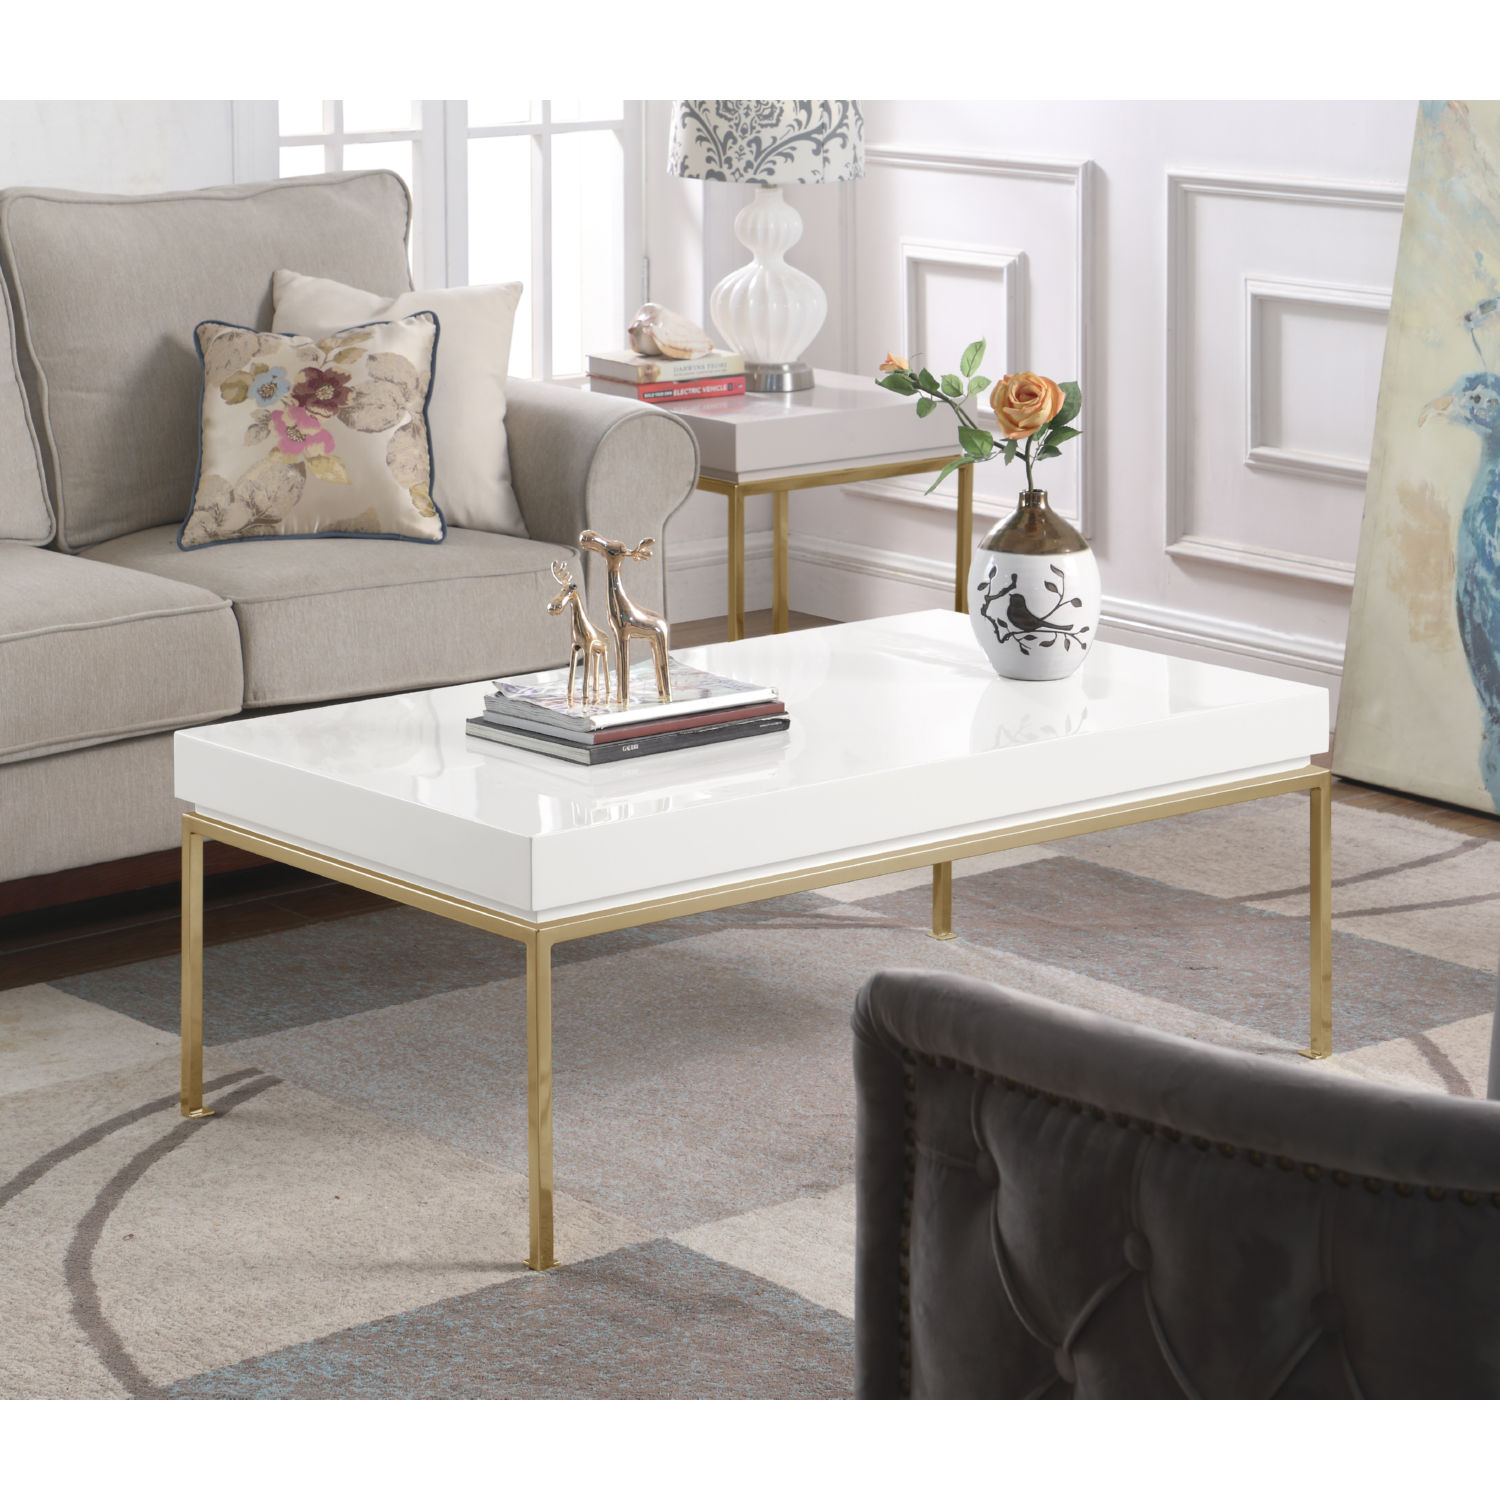 Chic Home Fst2958 Dr Alcee Side Table In High Gloss White